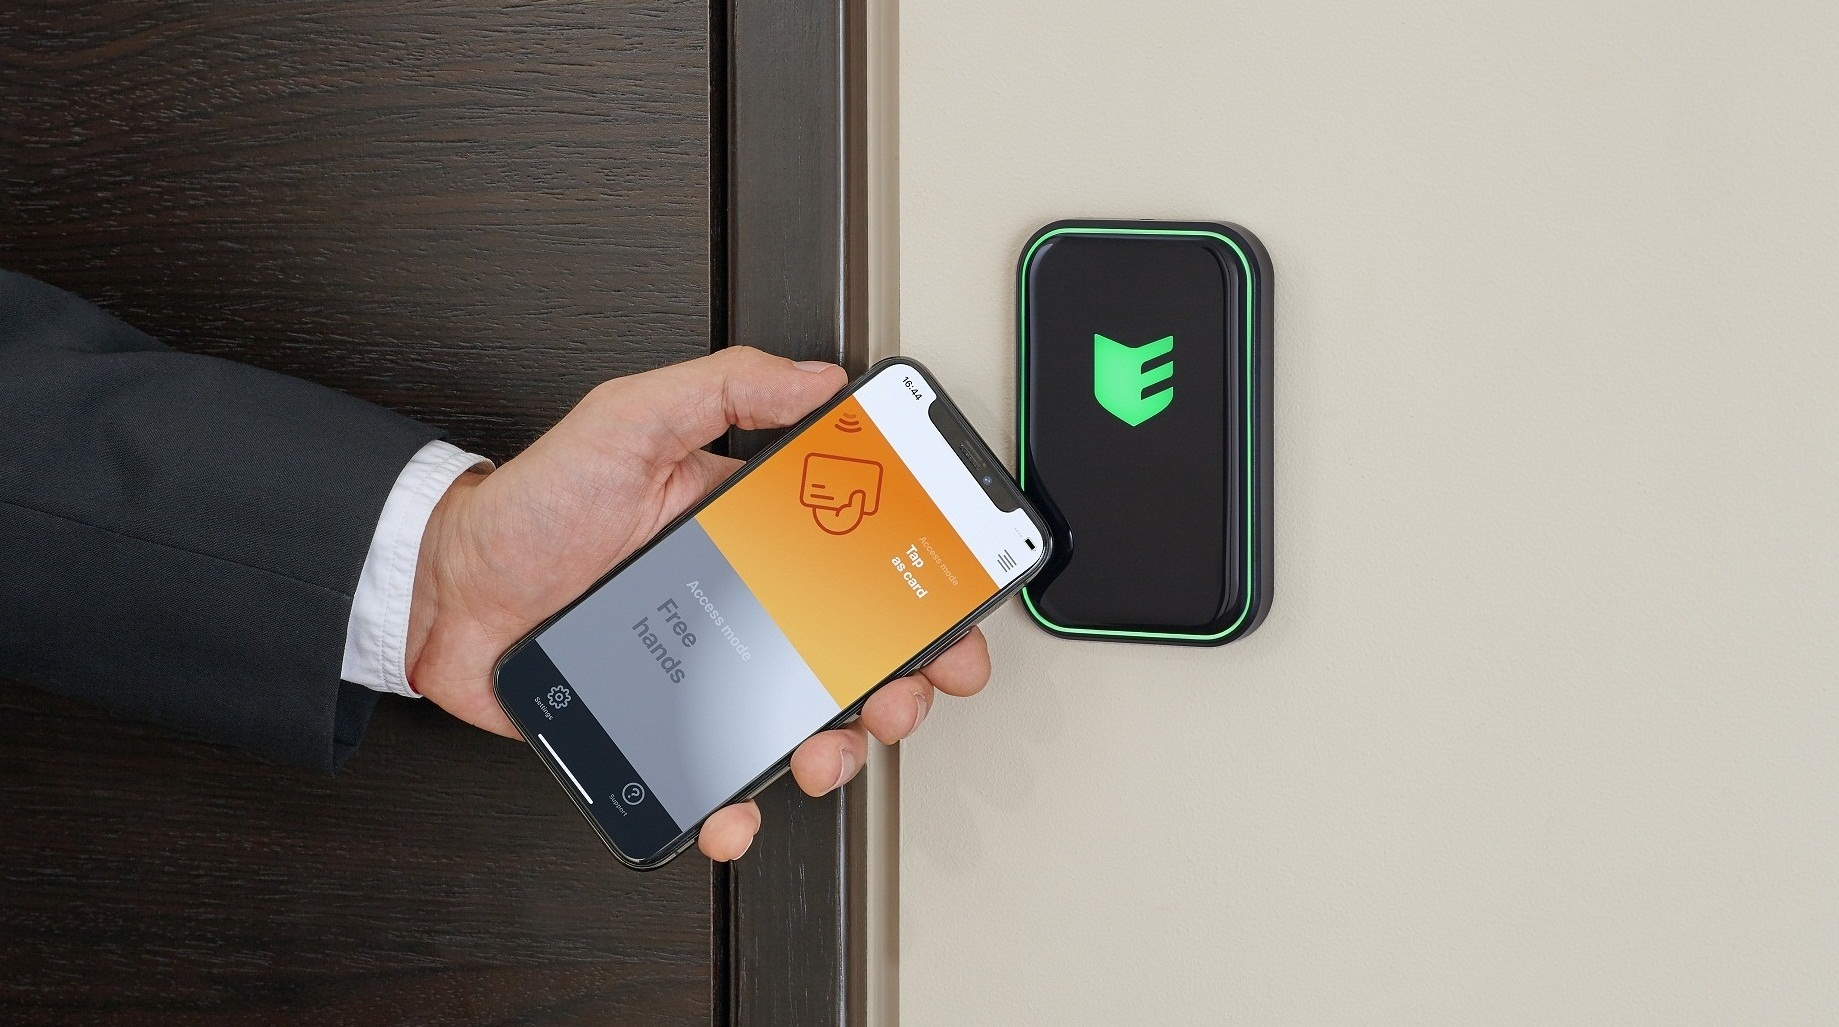 Smartphone access - a new era in access control systems